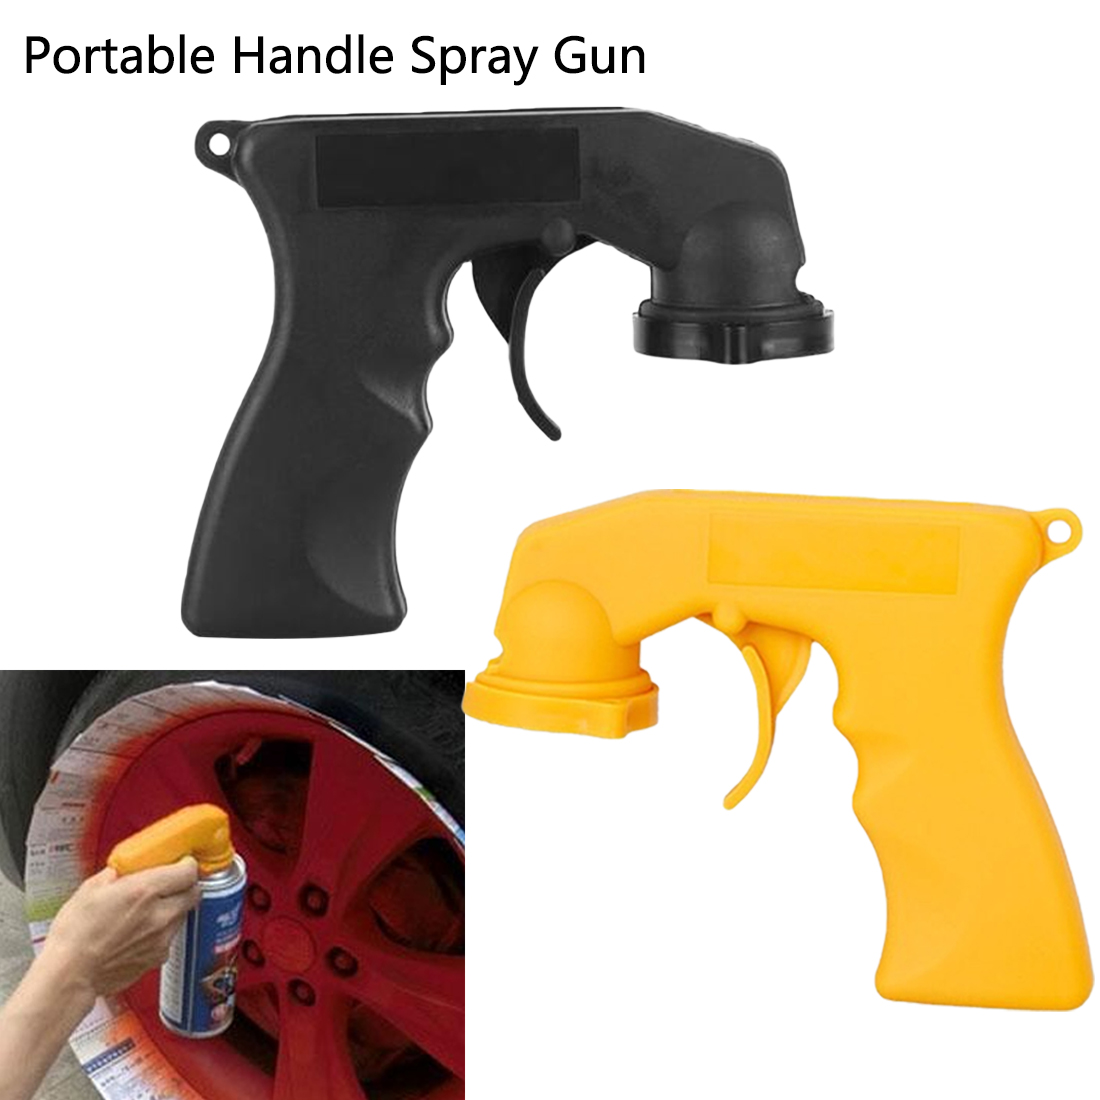 Portable Handle Spray Gun Aerosol Spray Can Handle with Full Grip Trigger for Painting Hand Tool Set